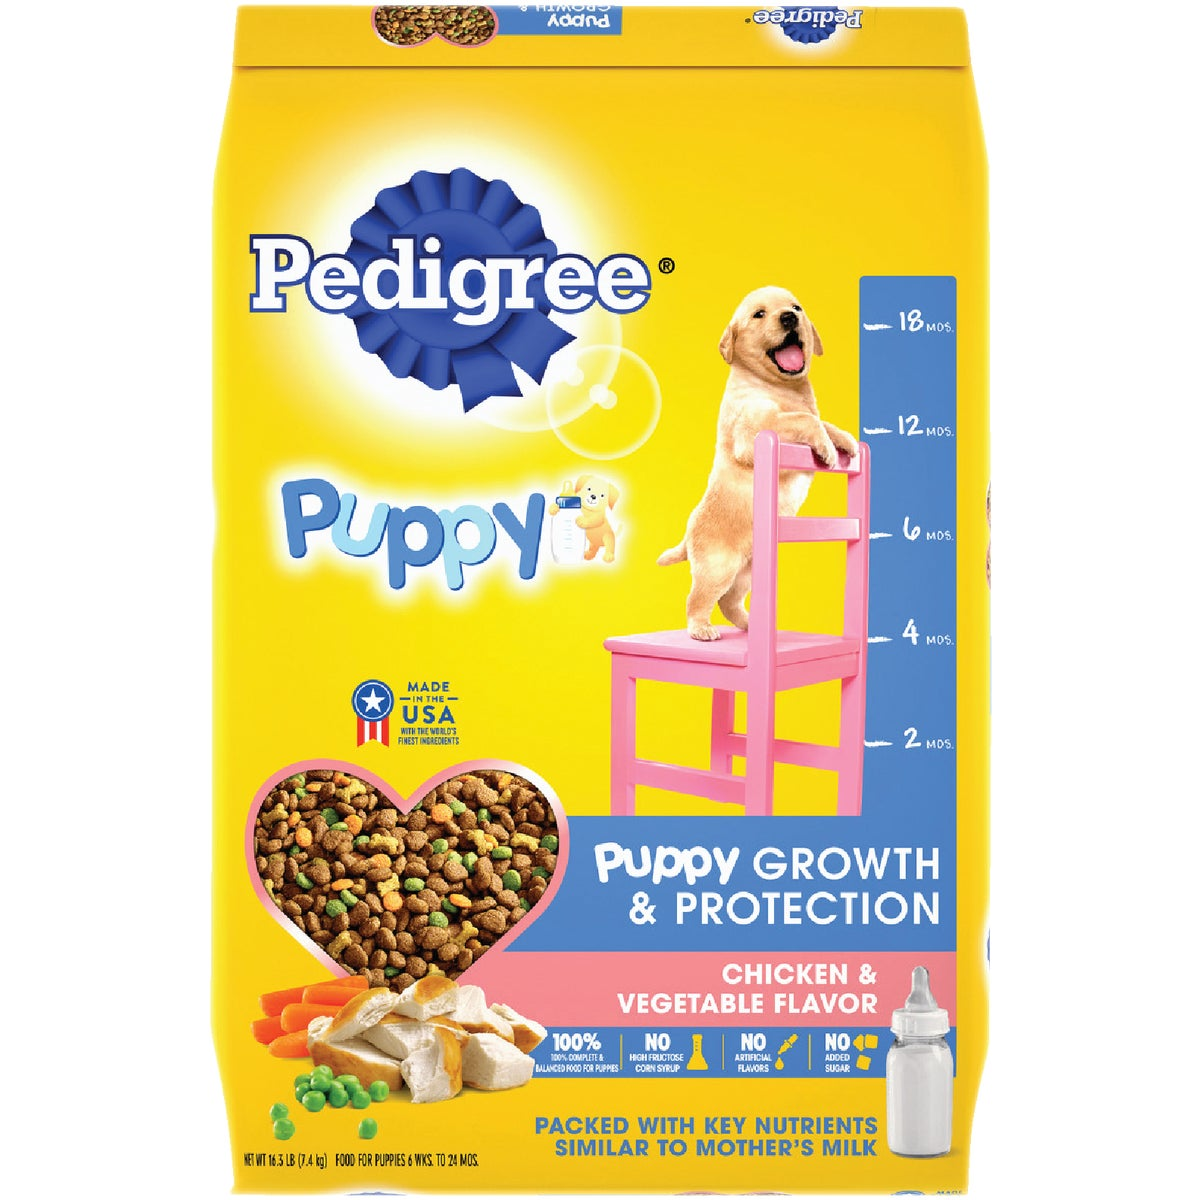 16LB PUPPY CHKN DOG FOOD - 10084160 by Mars Pedigree